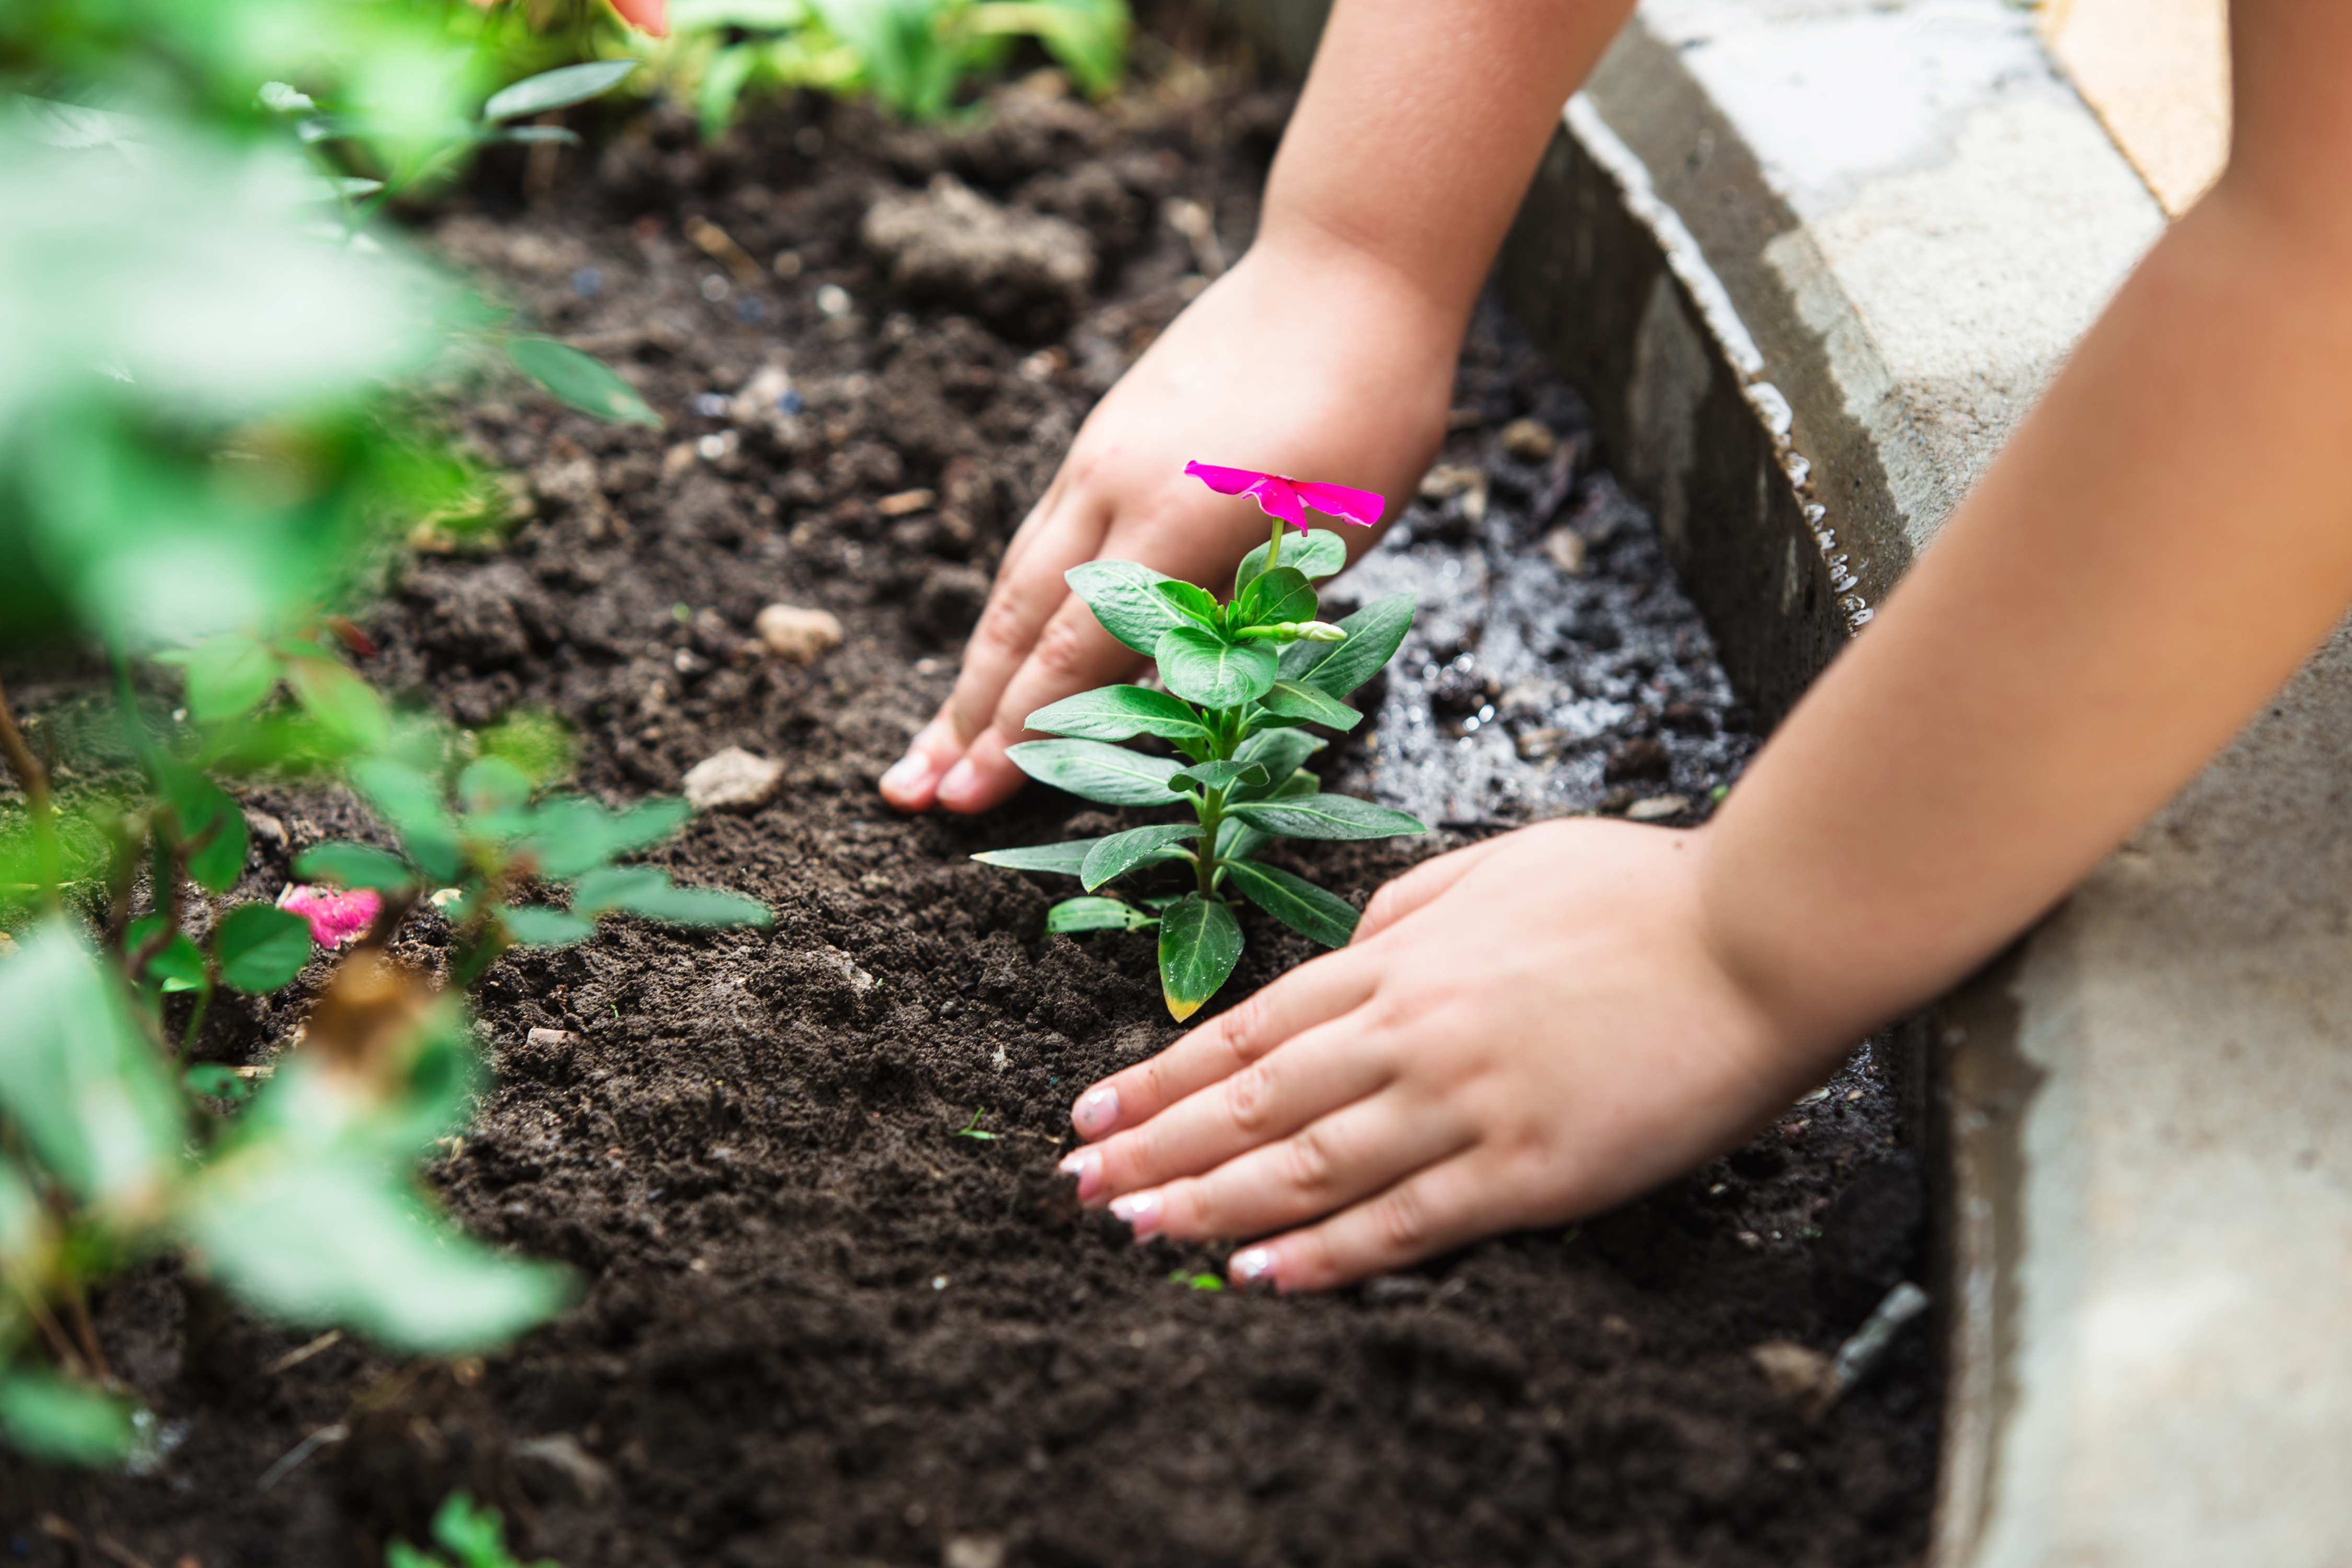 Spending time with children in the garden is an experience they will always remember. Teach and encourage them to dig and plant – and care for other living things.